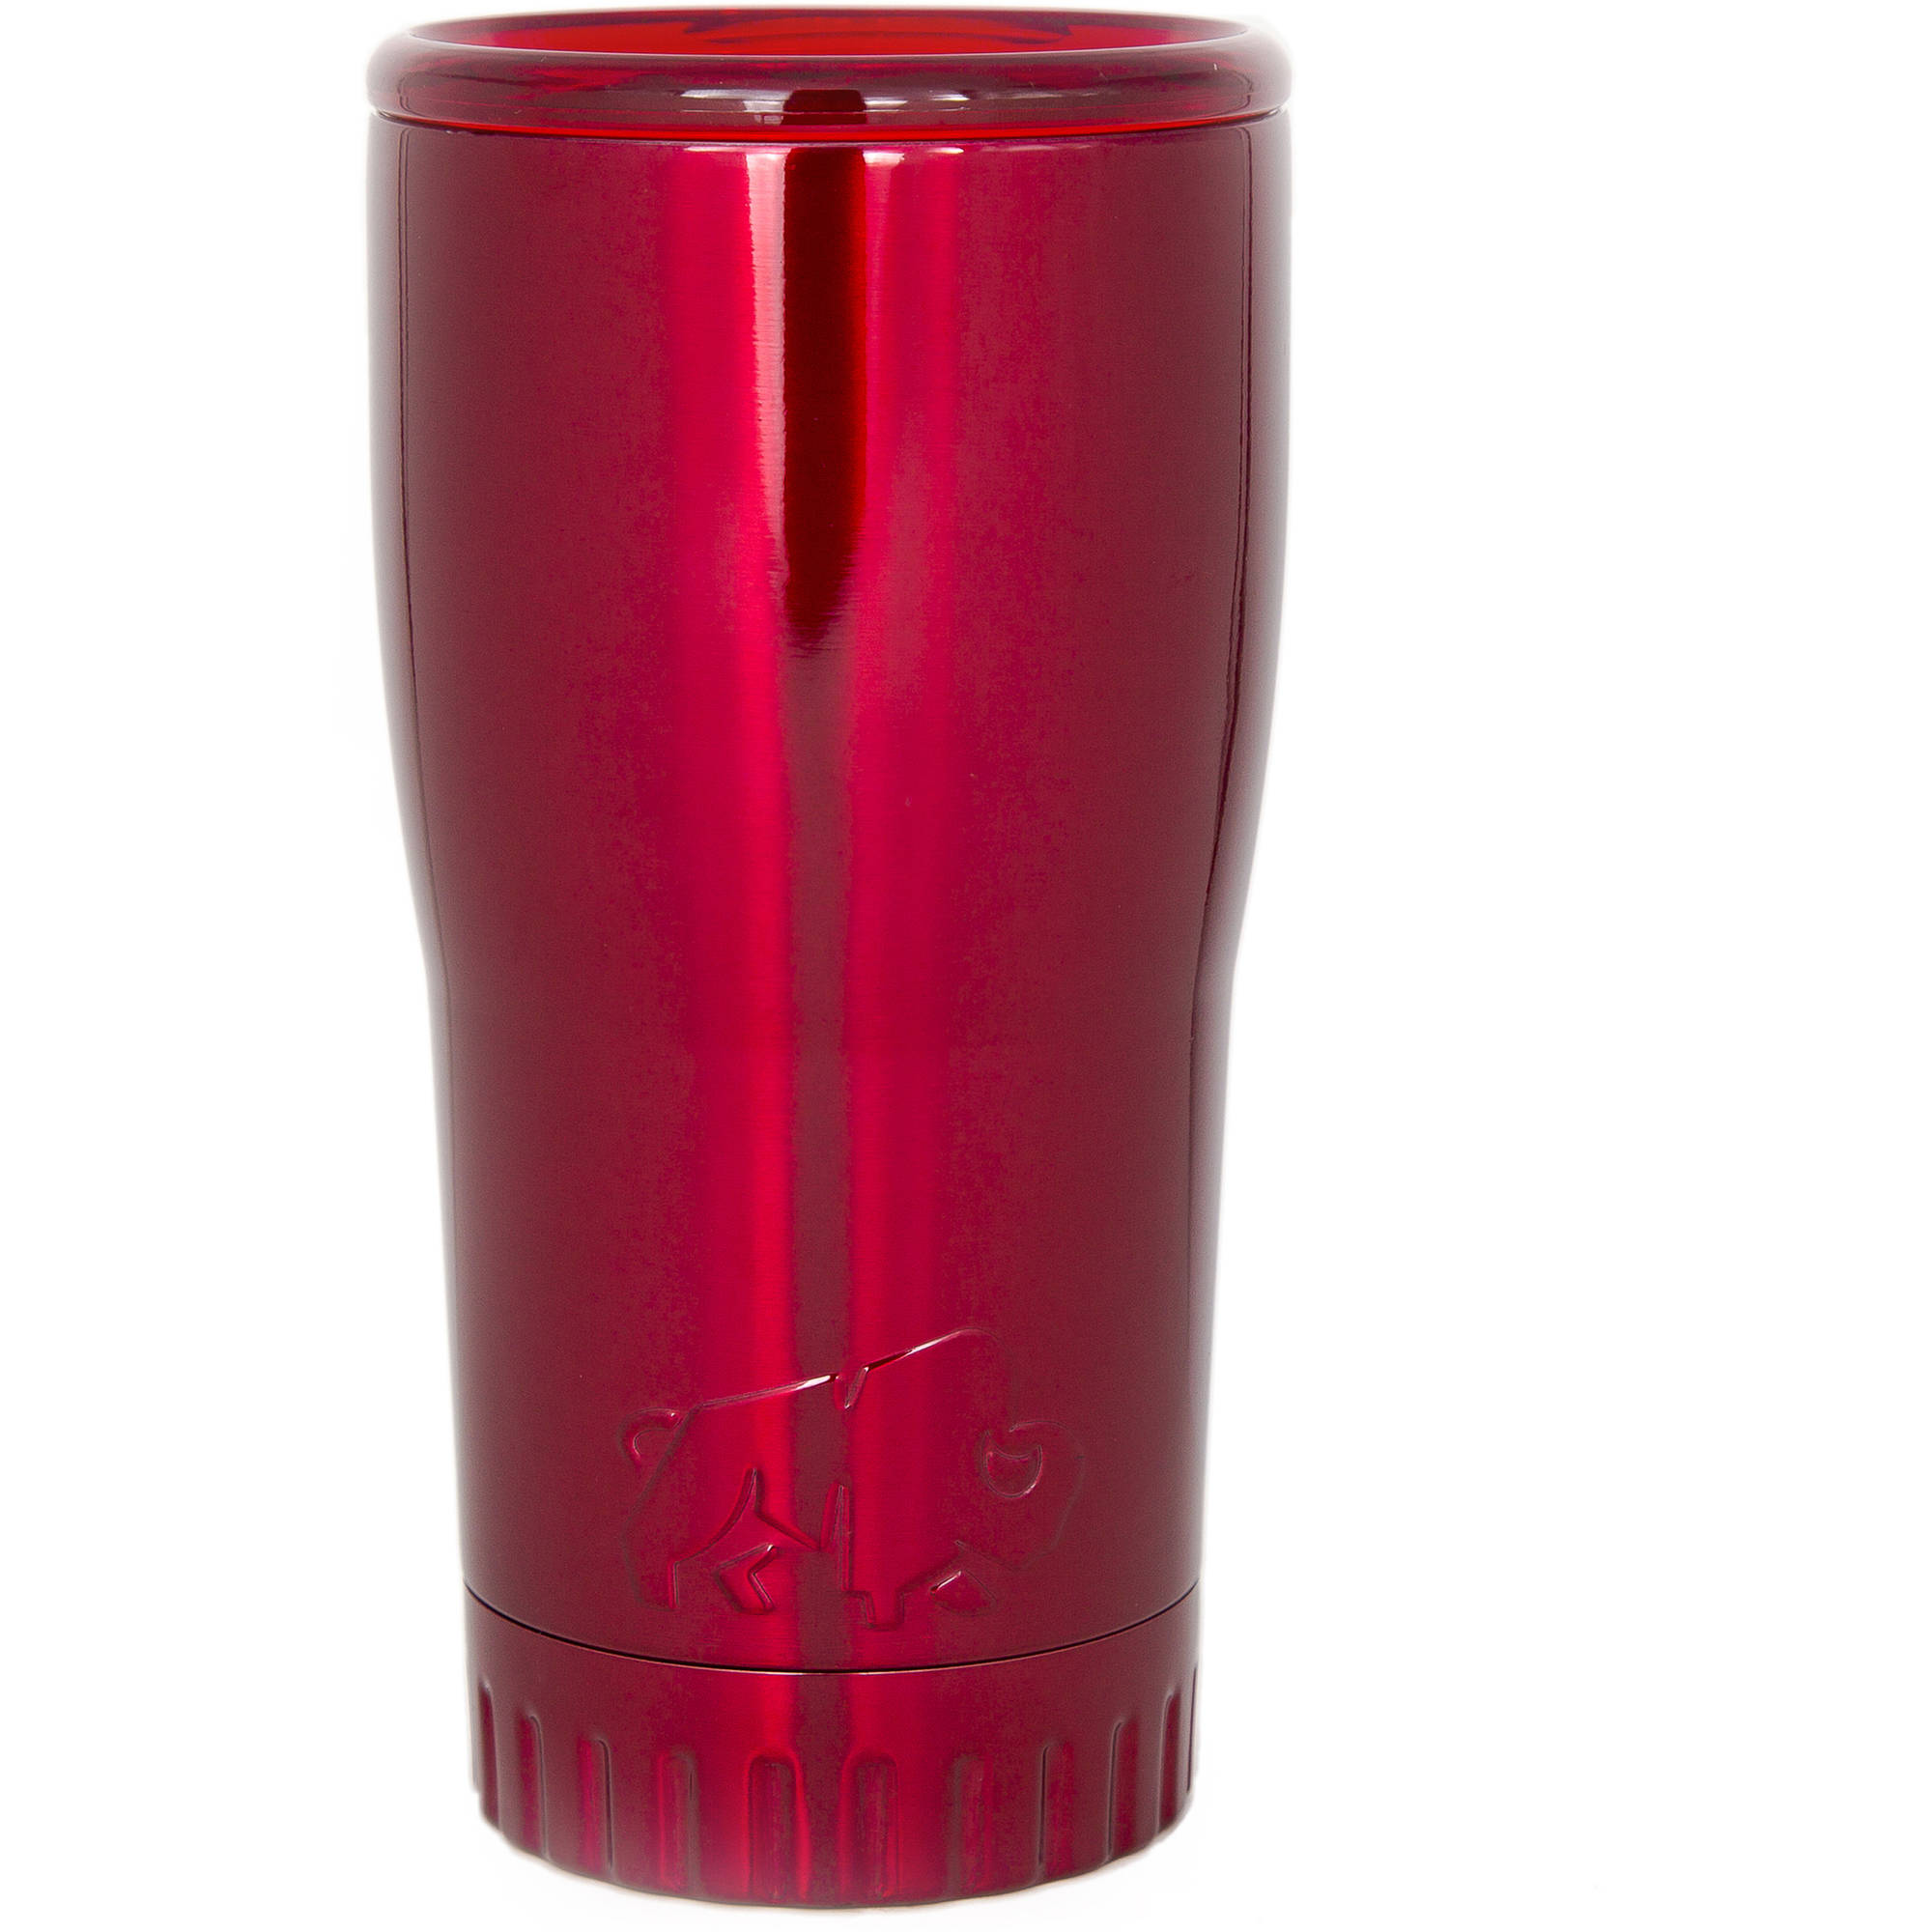 Silver Buffalo Stainless Steel Insulated Tumbler, 20 oz., Red